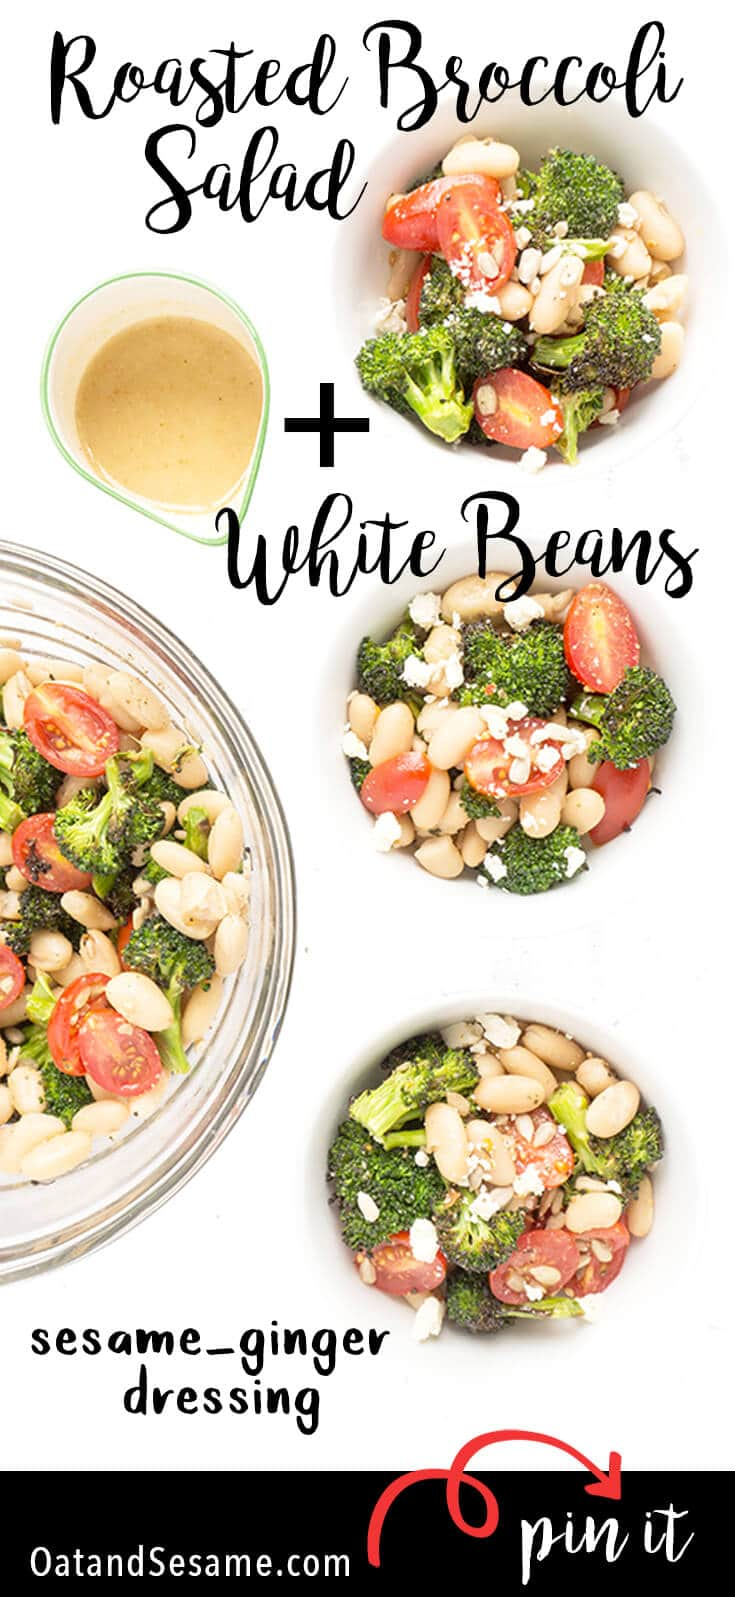 This ROASTED BROCCOLI SALAD is a great side or main dish with cherry tomatoes, white beans, toasted sunflower seeds and a tangy SESAME GINGER DRESSING. Serve it warm or cold - it's delicious either way! LUNCH   SALAD   VEGETARIAN   BROCCOLI   Recipe at OatandSesame.com